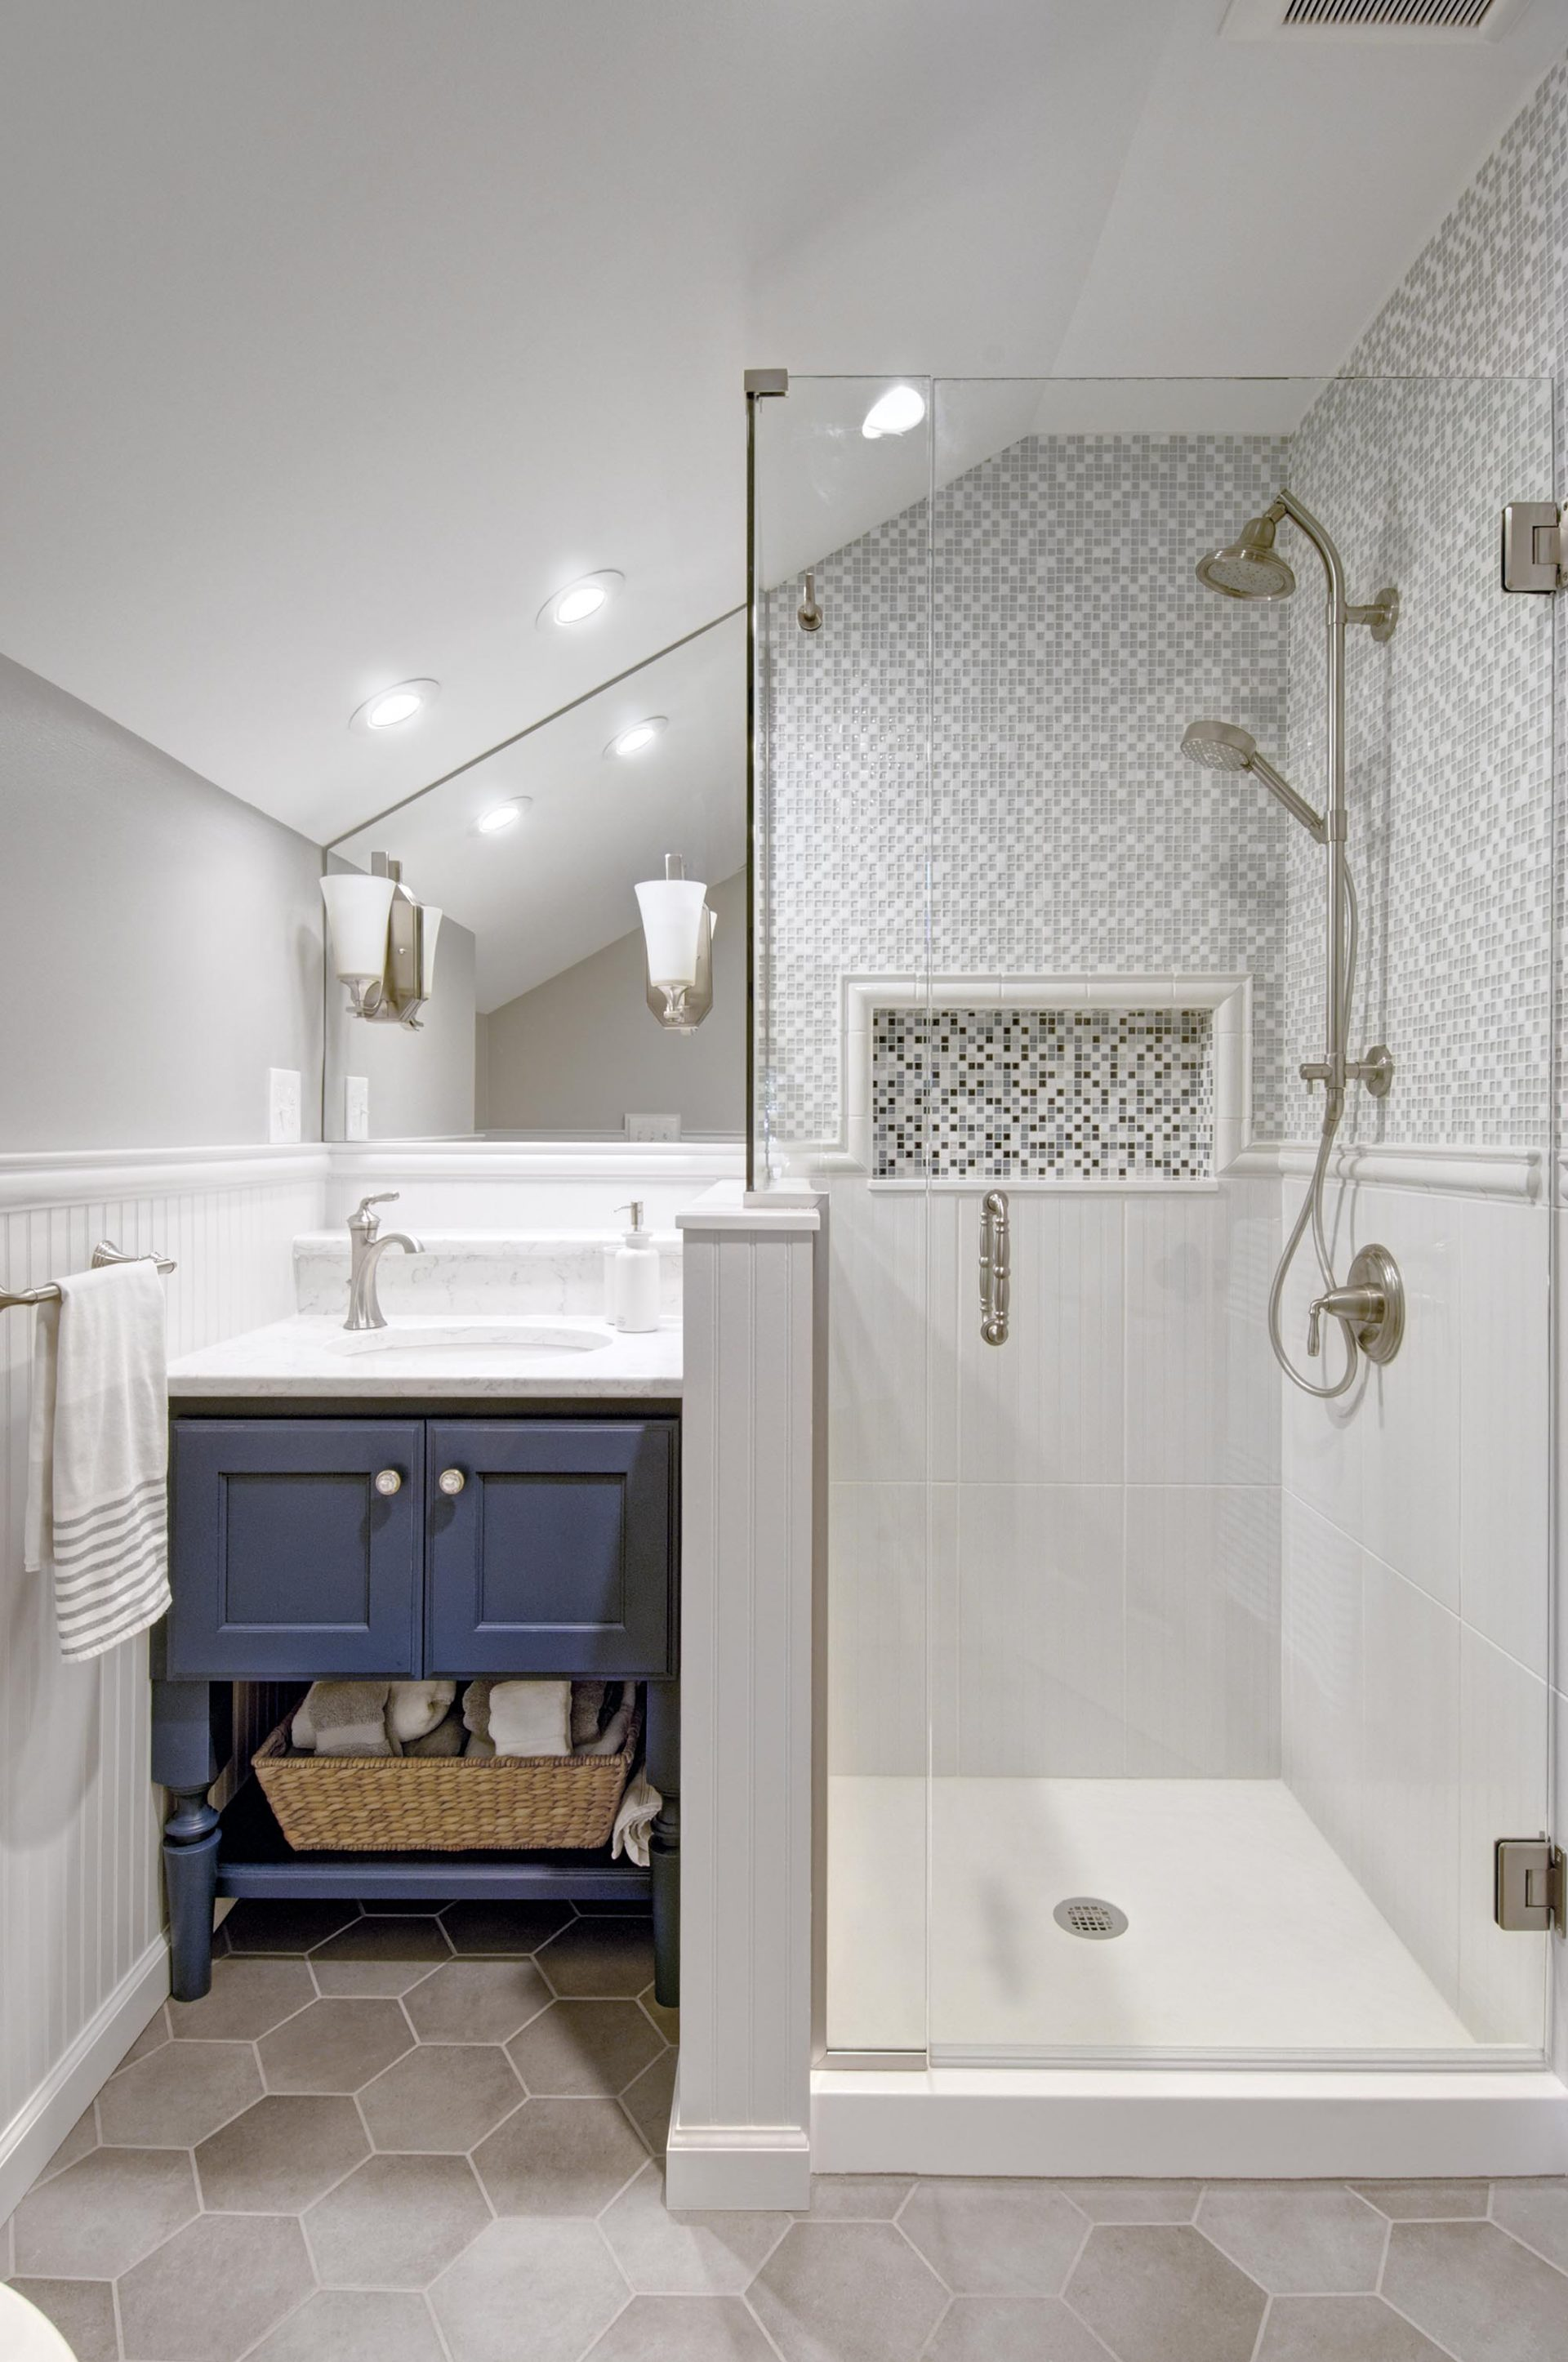 Bath, Dublin, Dave Fox, Remodel, hexagon tile, blue, glass shower, bead board